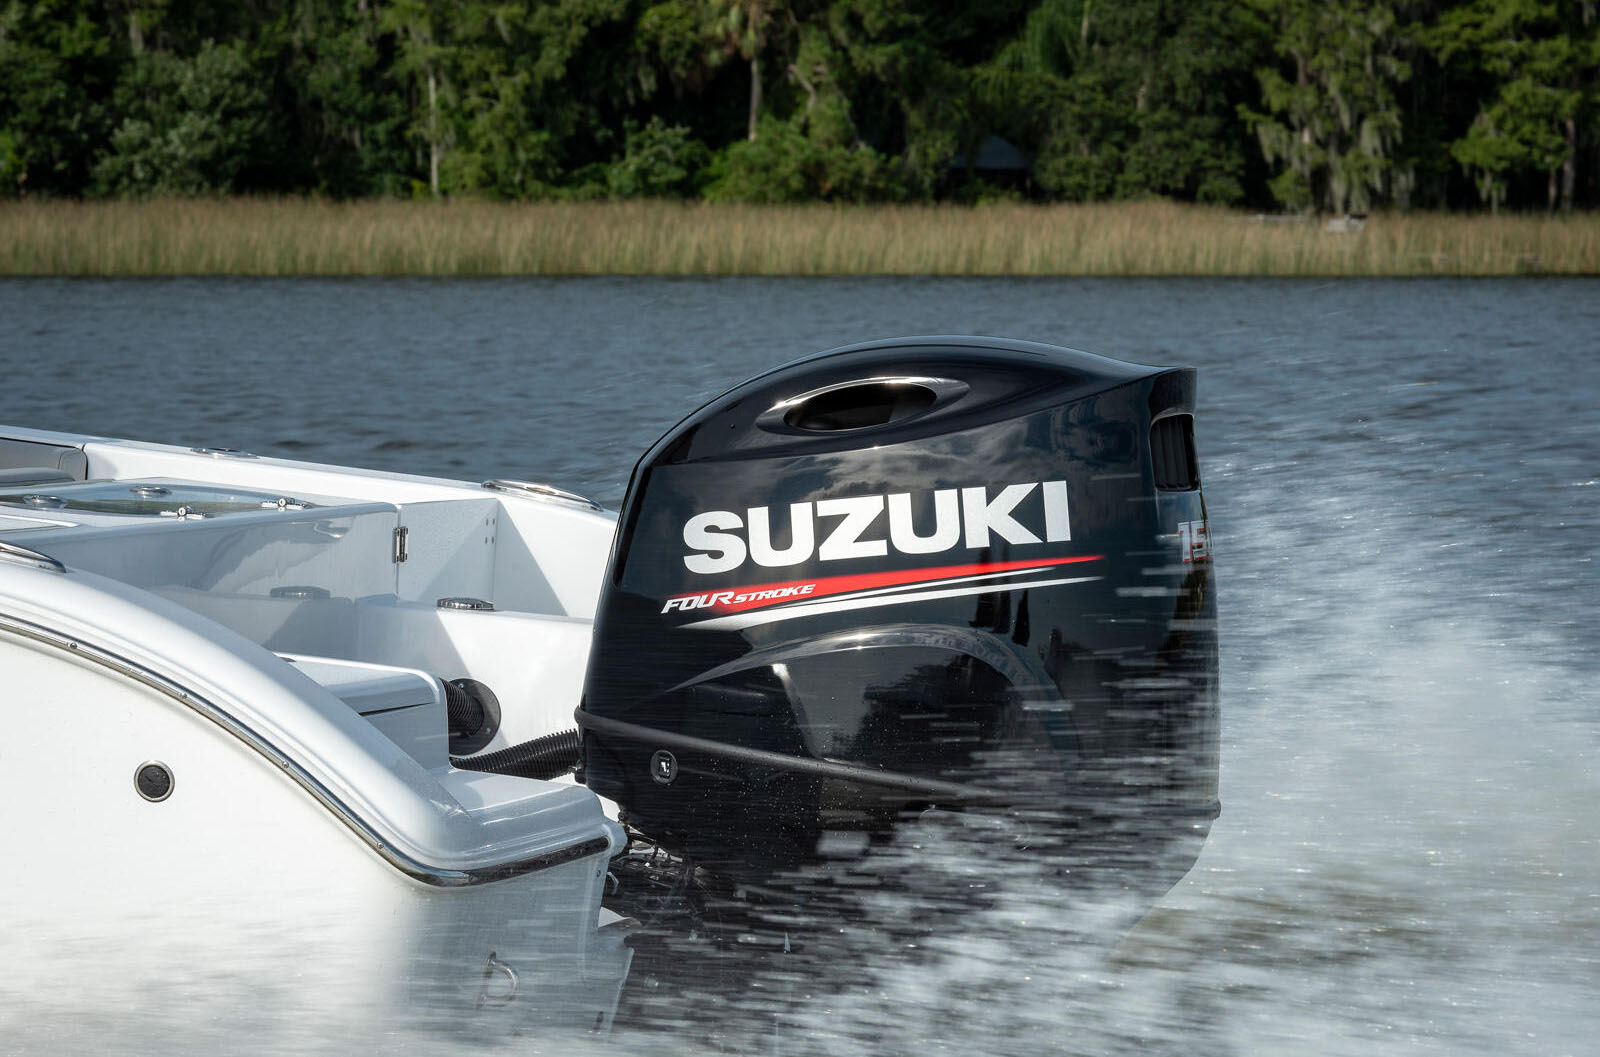 Suzuki enhances model line-up with new DF175A and DF150A